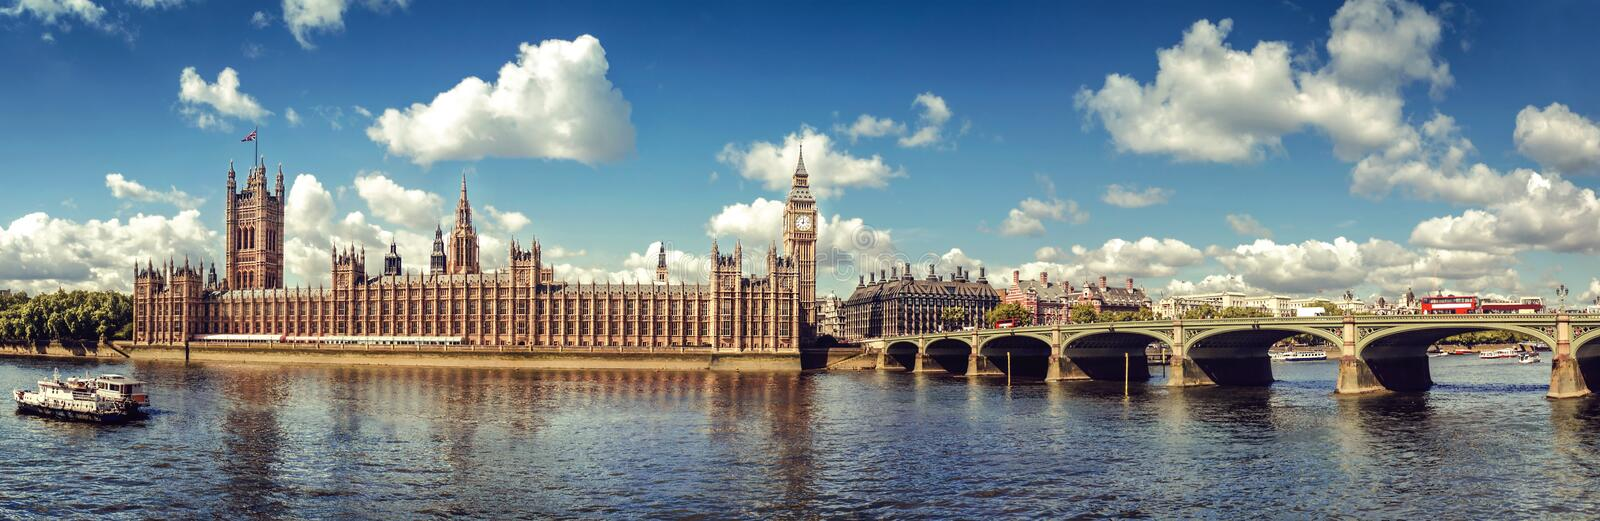 Houses of Parliament Panorama royalty free stock photo